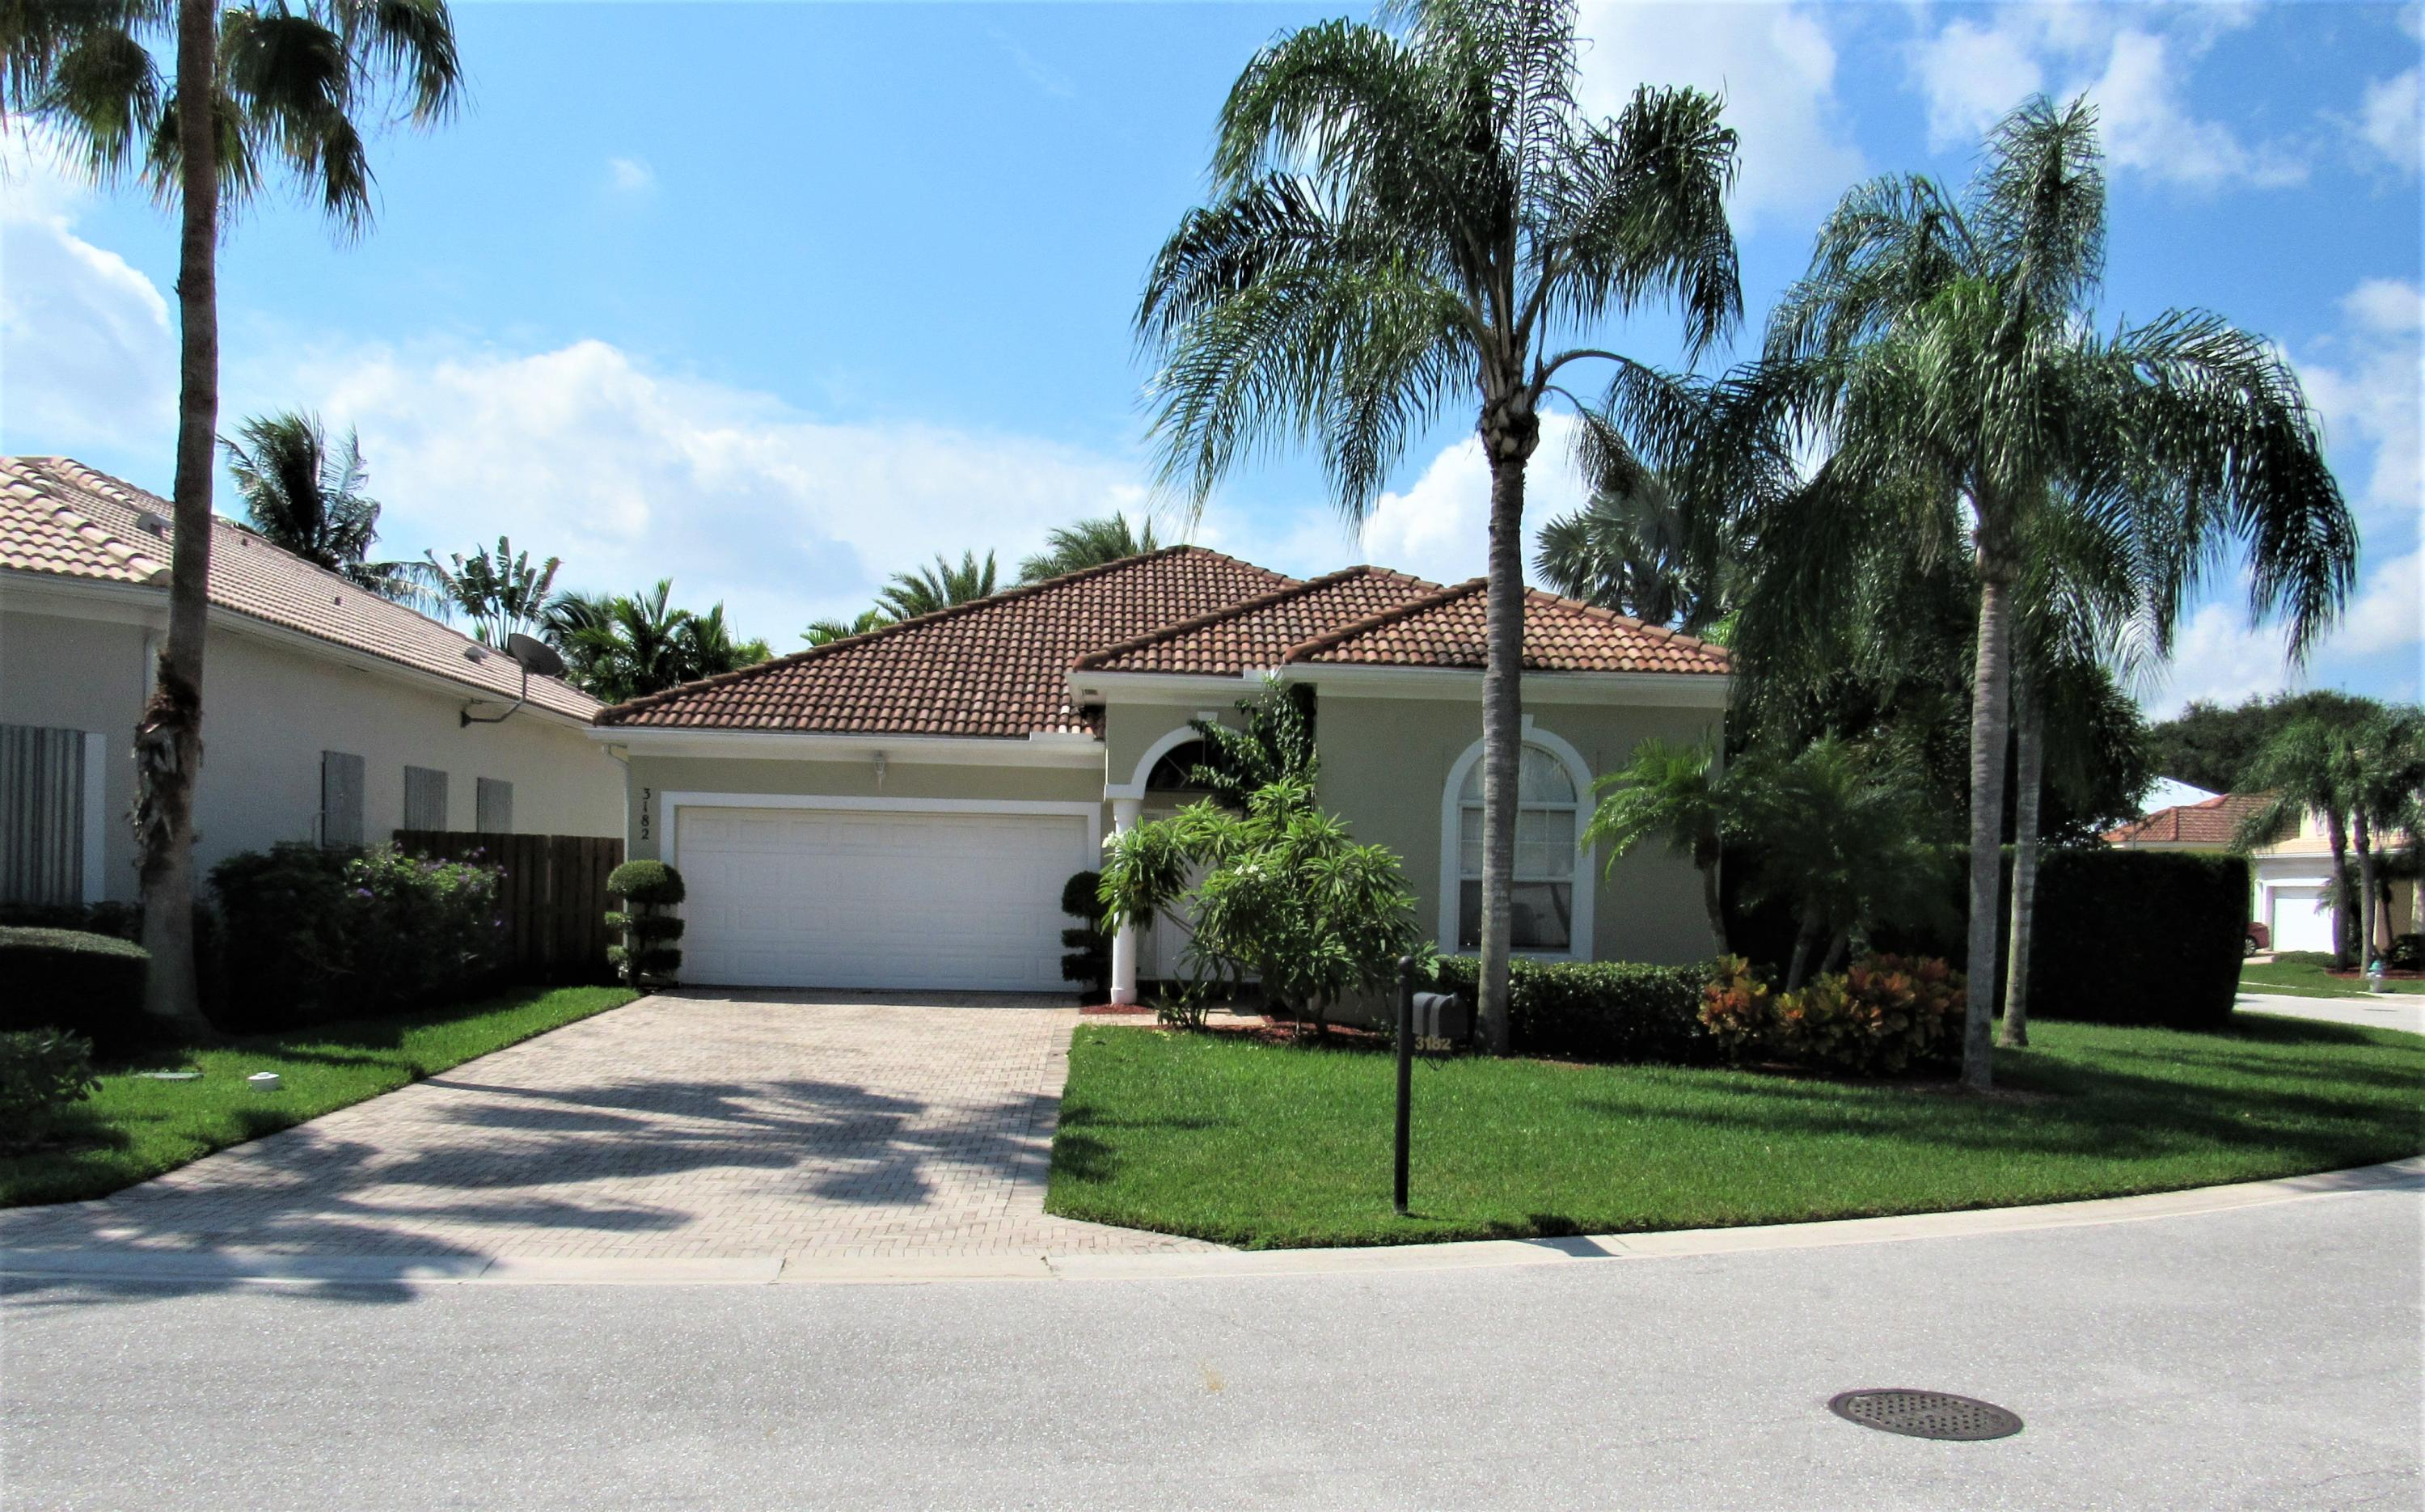 Photo of 3182 El Camino Real, West Palm Beach, FL 33409